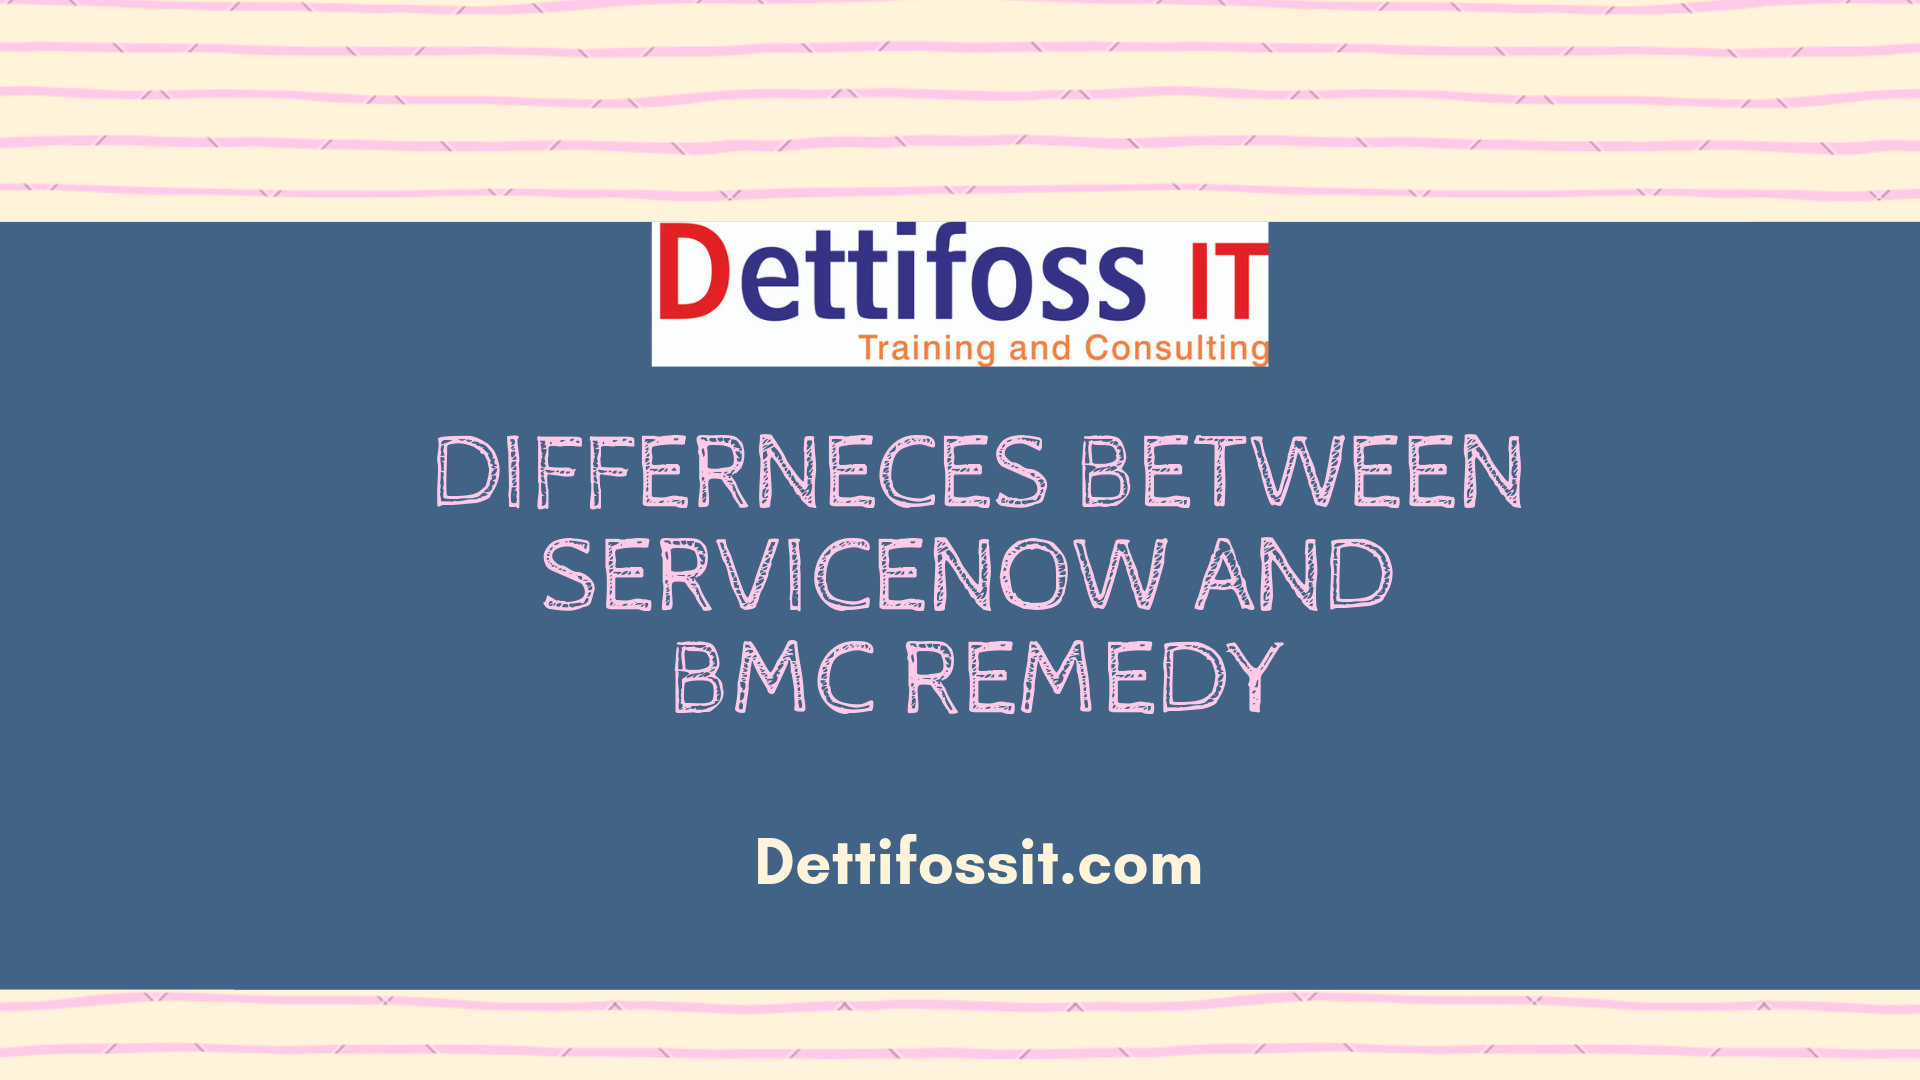 What are the big differences between ServiceNow and BMC Remedy?